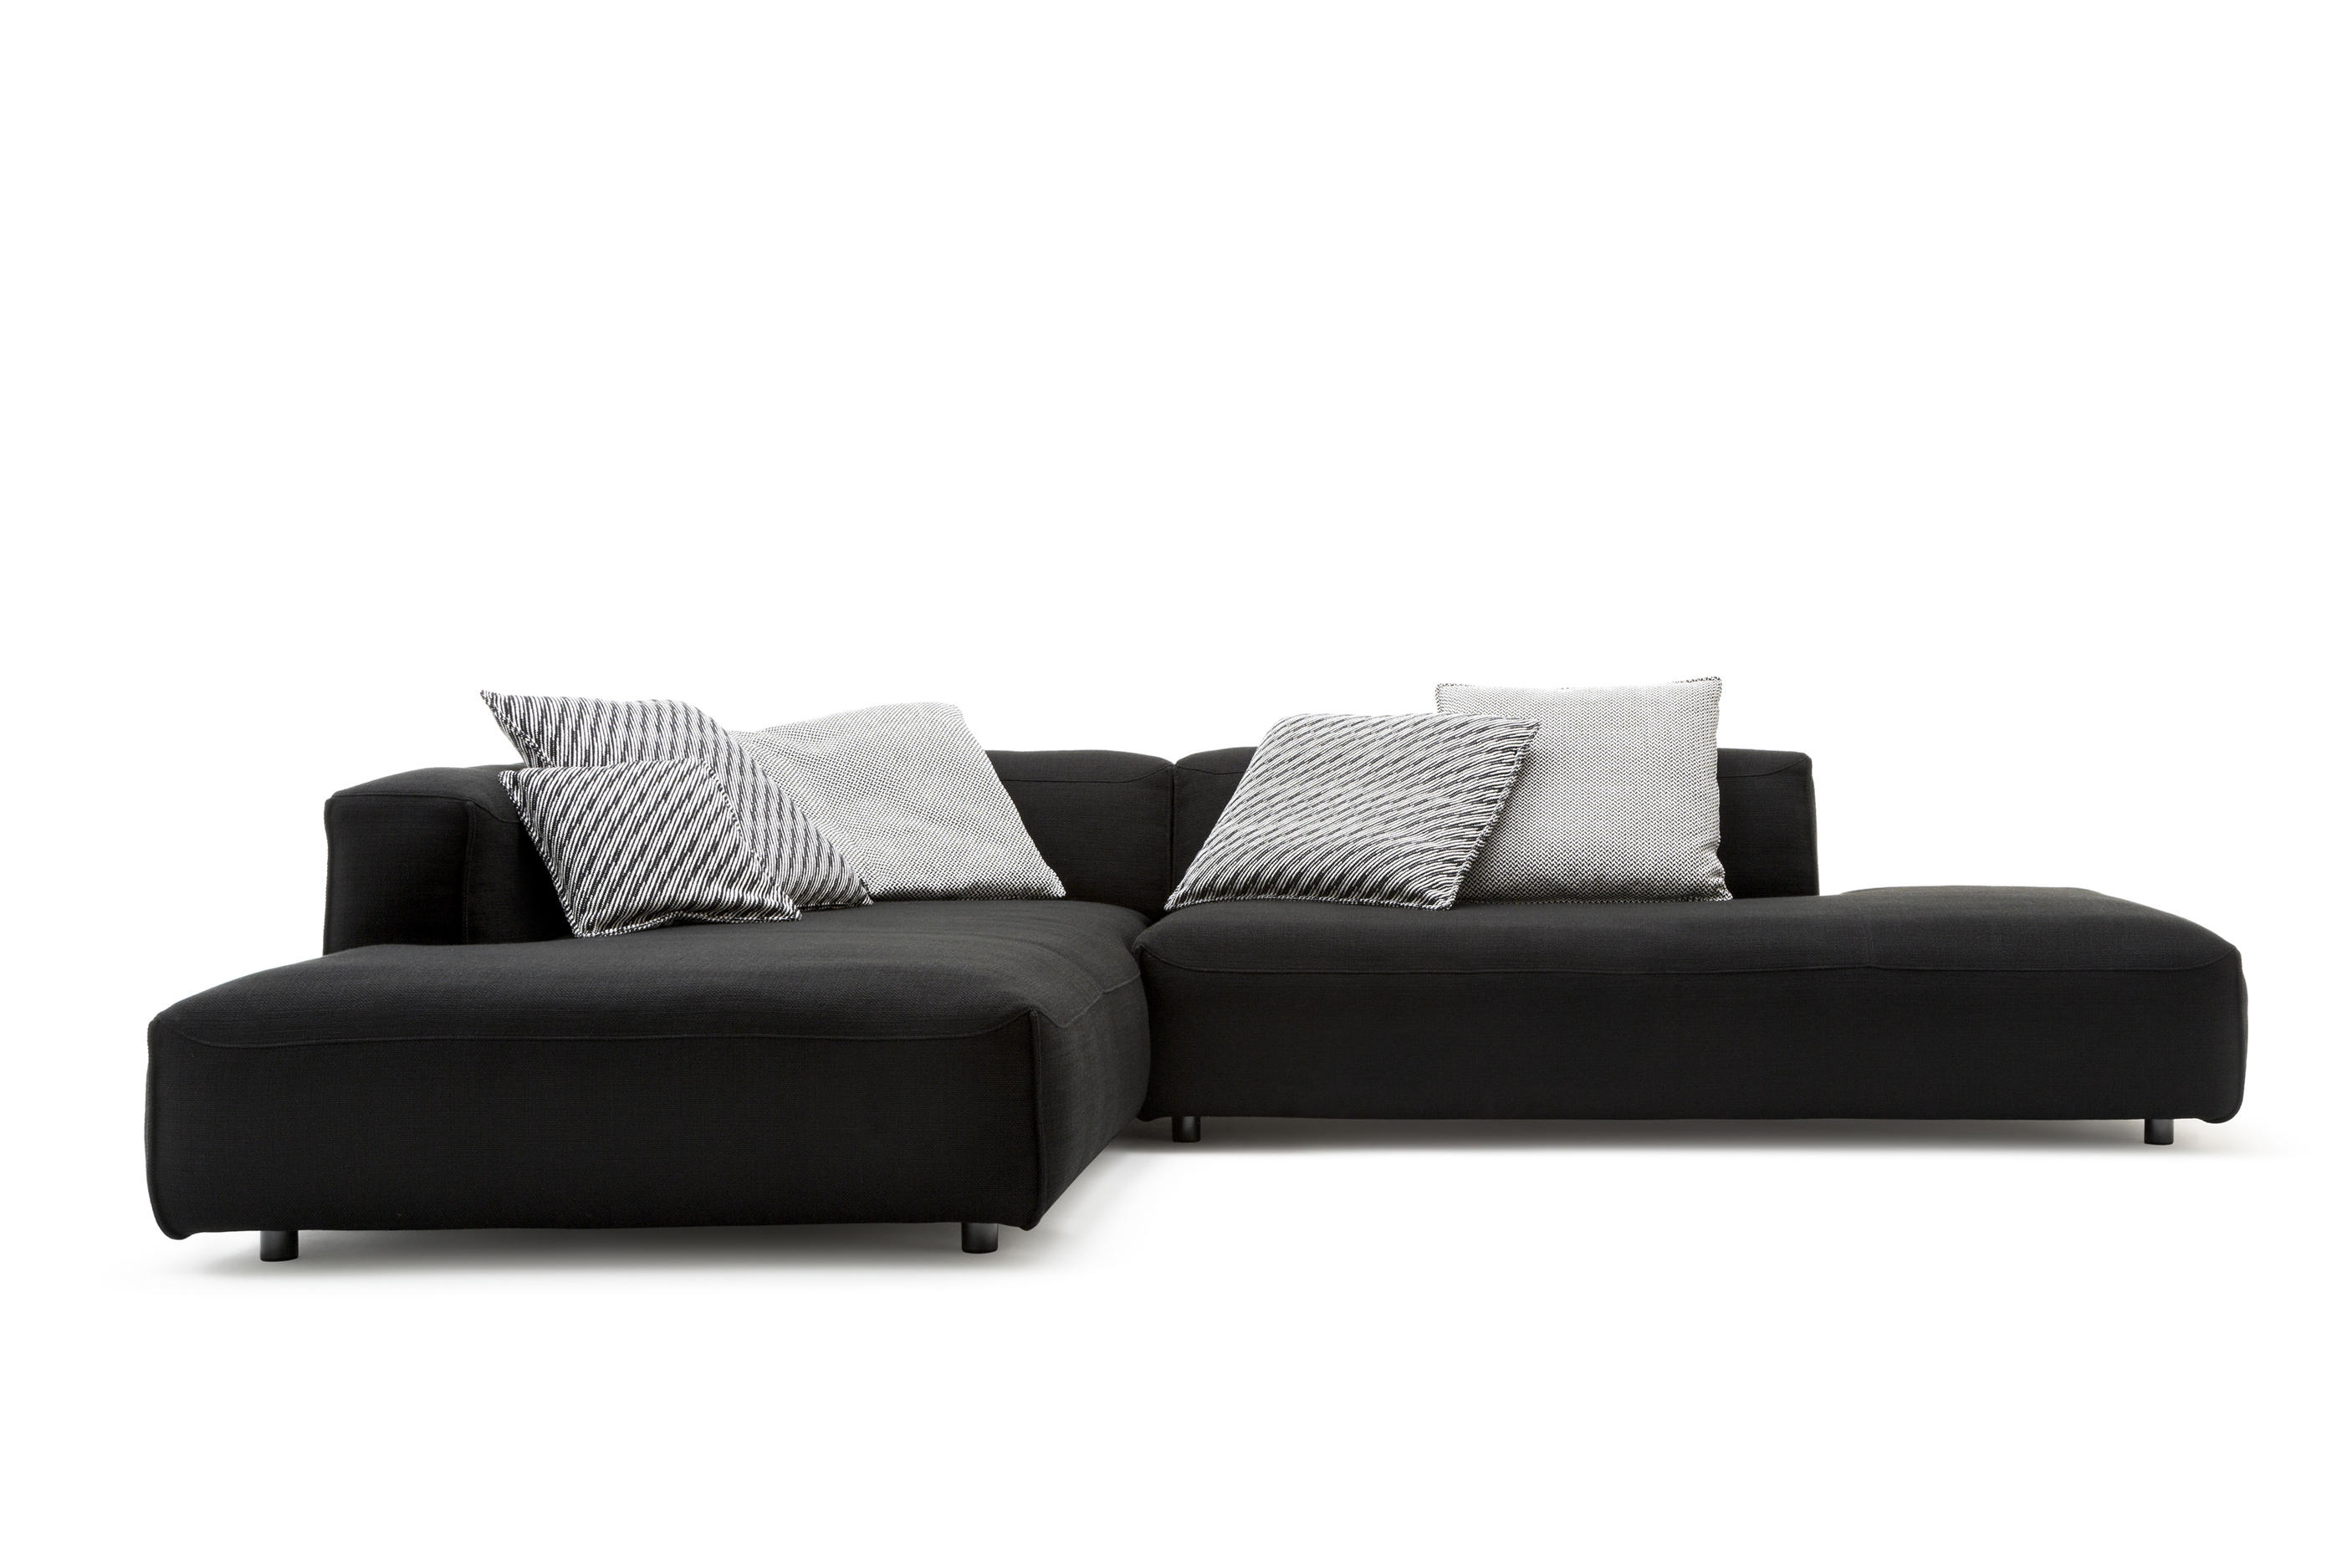 rolf benz 552 mio modular sofa systems from rolf benz architonic. Black Bedroom Furniture Sets. Home Design Ideas